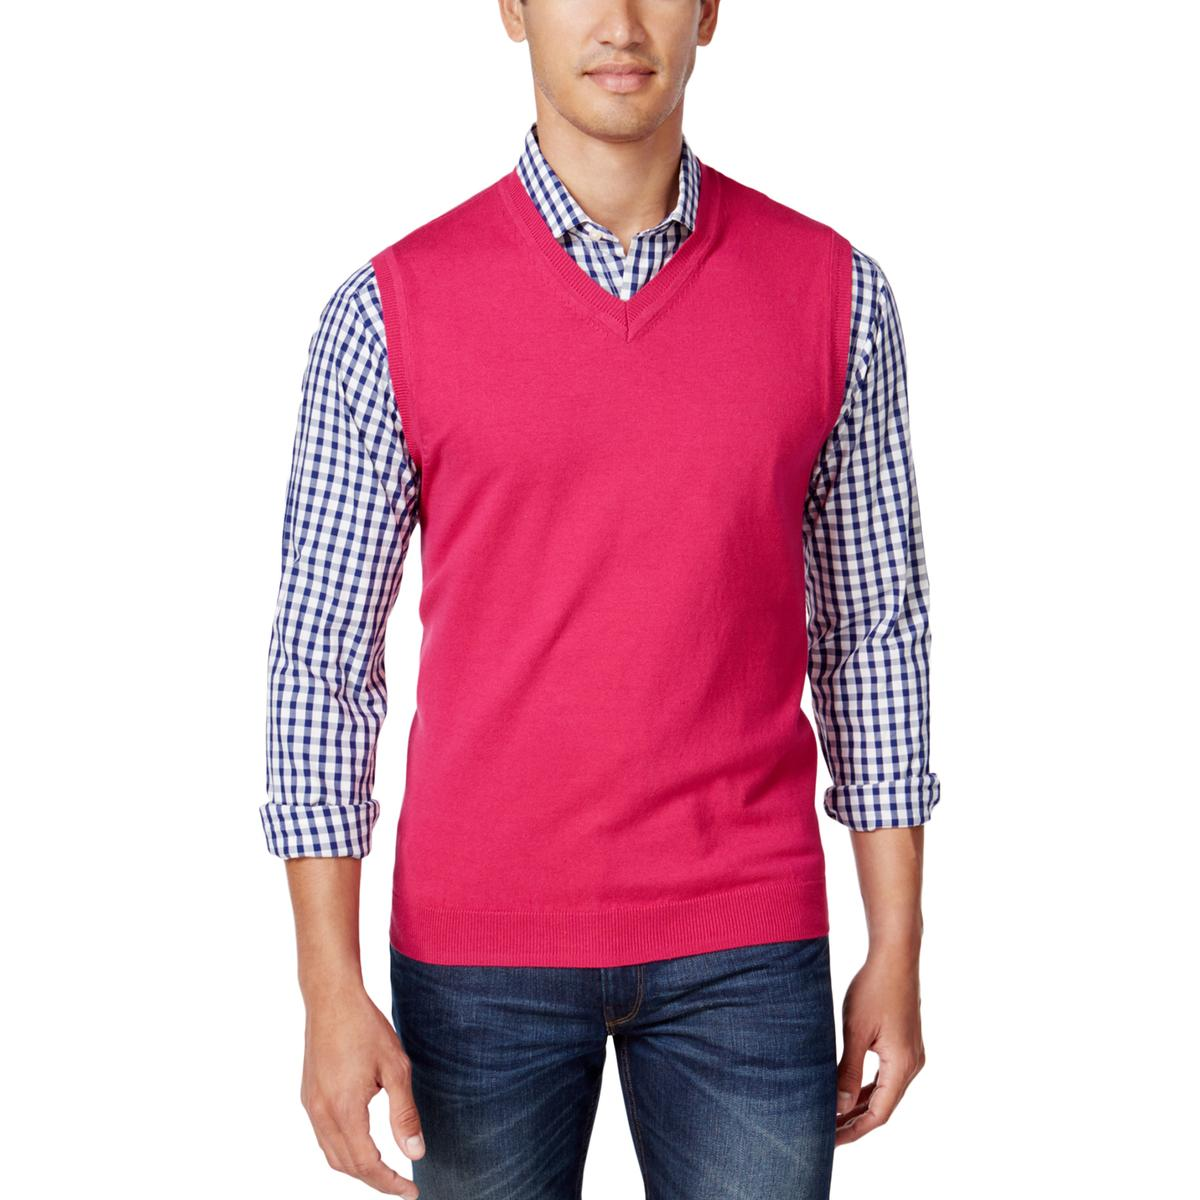 Club Room Men's Cherry Pink V-neck Sweater Vest Size S | eBay